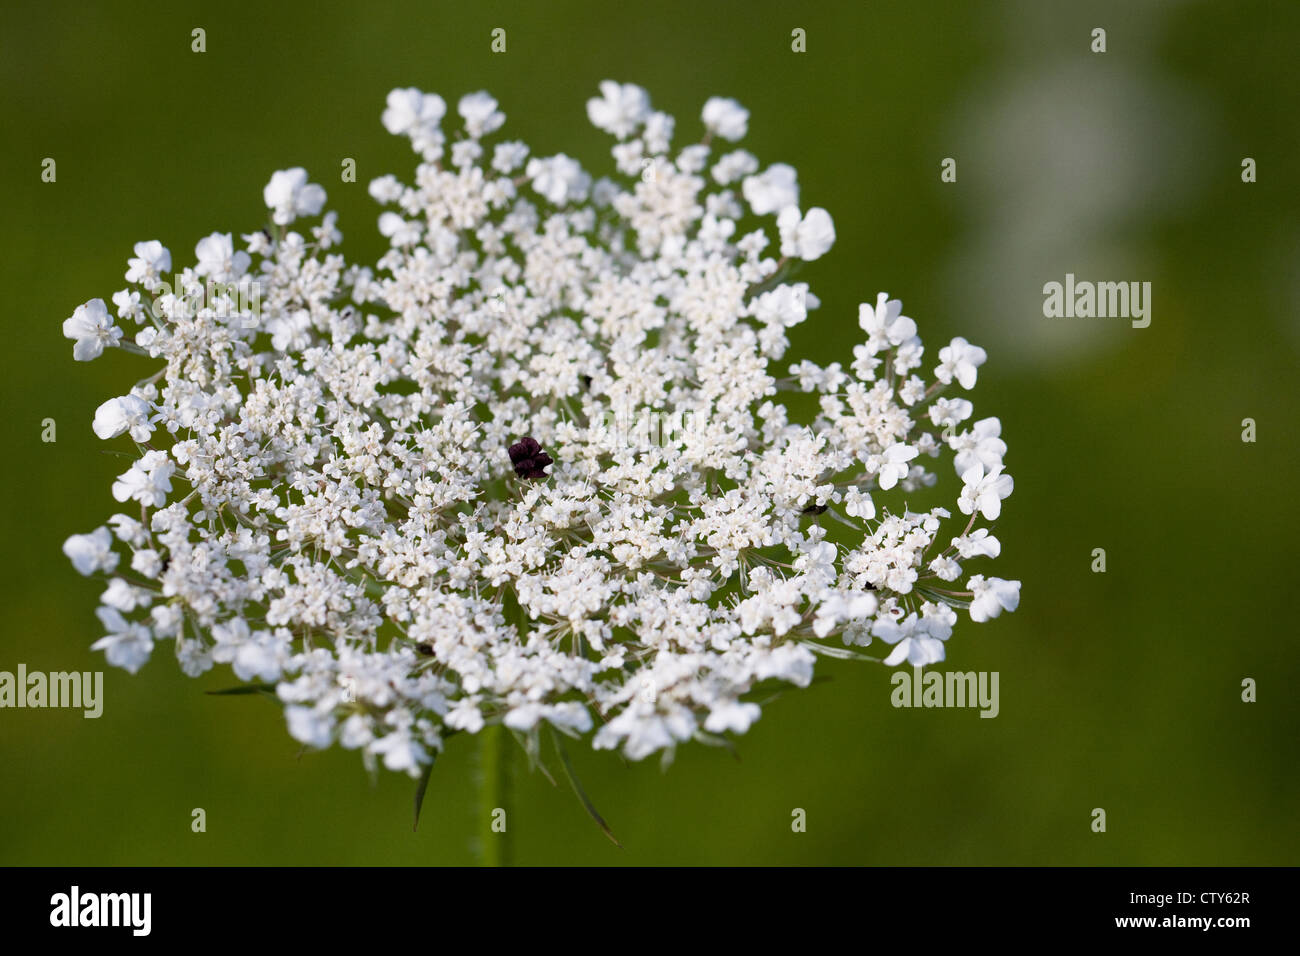 Daucus carota. Wild carrot growing in a meadow. - Stock Image